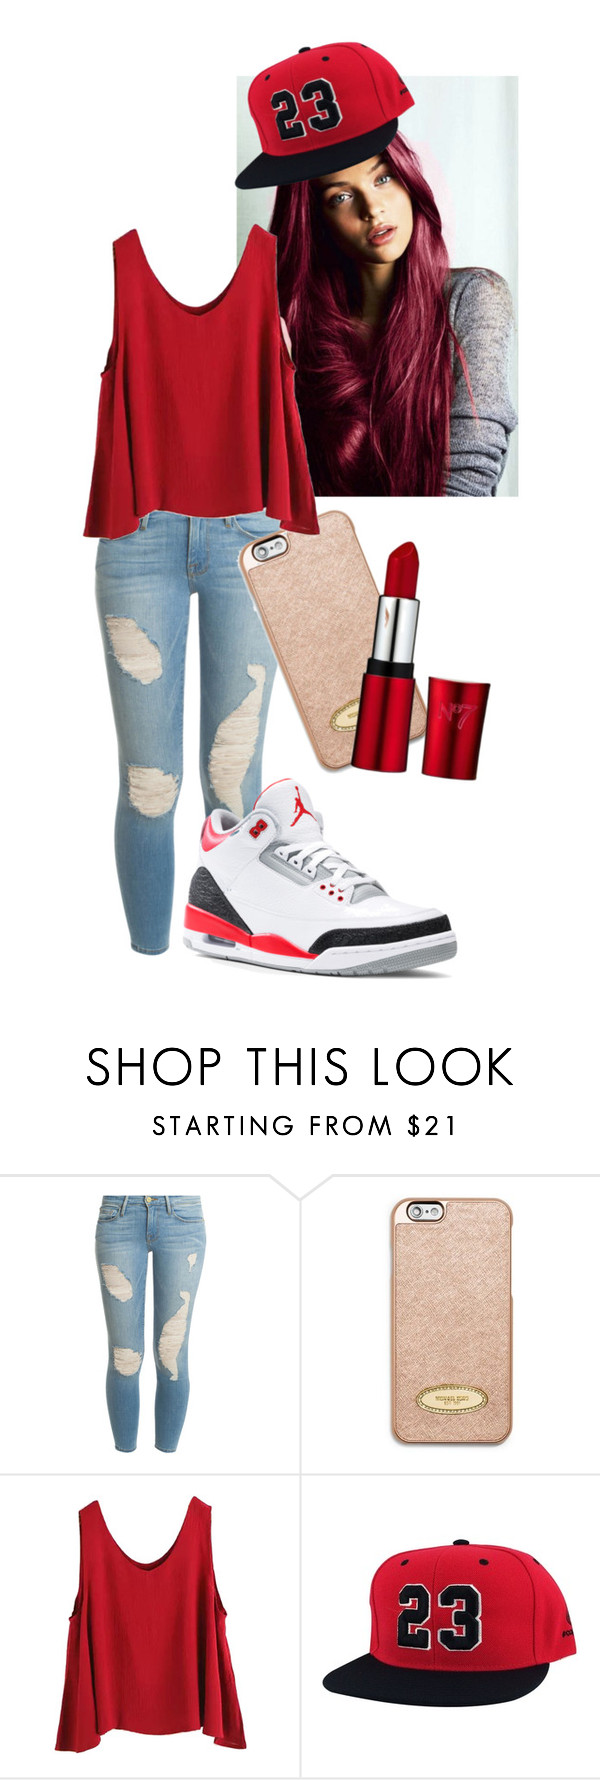 """This chick got the right one"" by knowmequeena ❤ liked on Polyvore featuring Frame Denim, MICHAEL Michael Kors, WithChic, women's clothing, women's fashion, women, female, woman, misses and juniors"